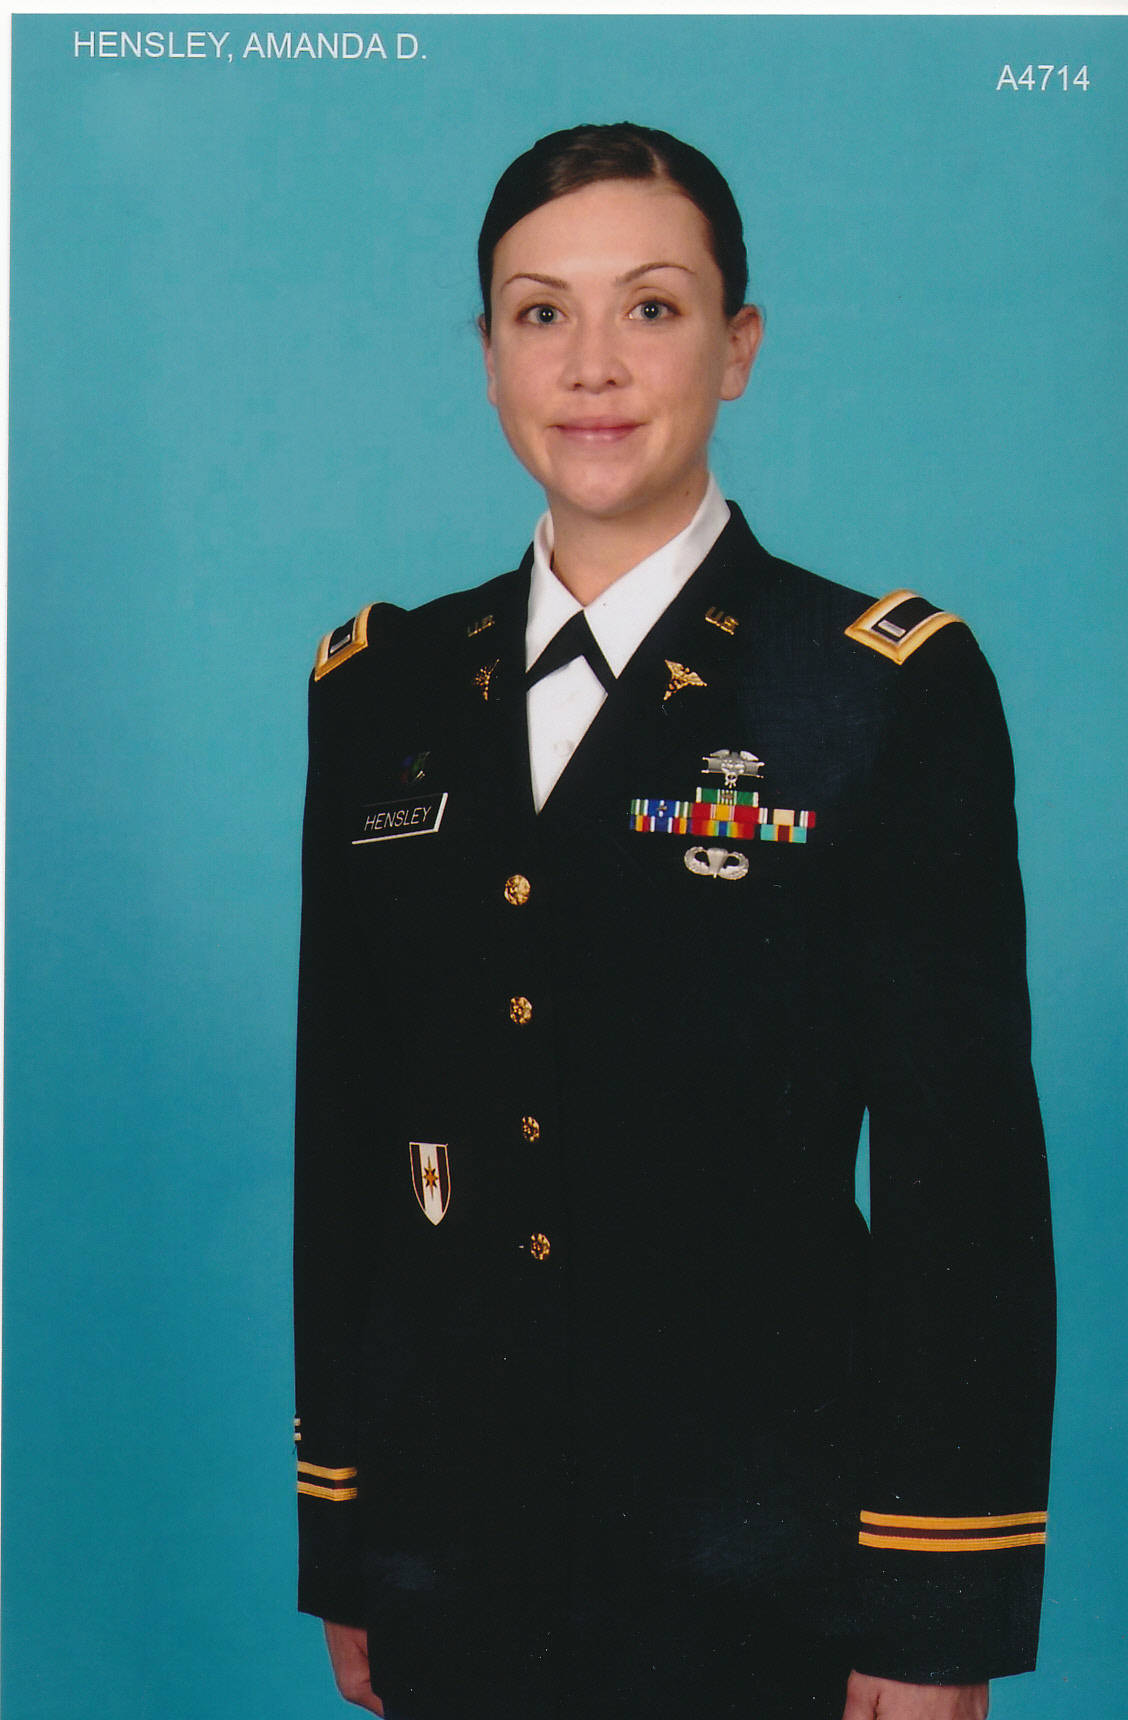 Amanda is currently stationed in San Antonio as a member of the United States Army.